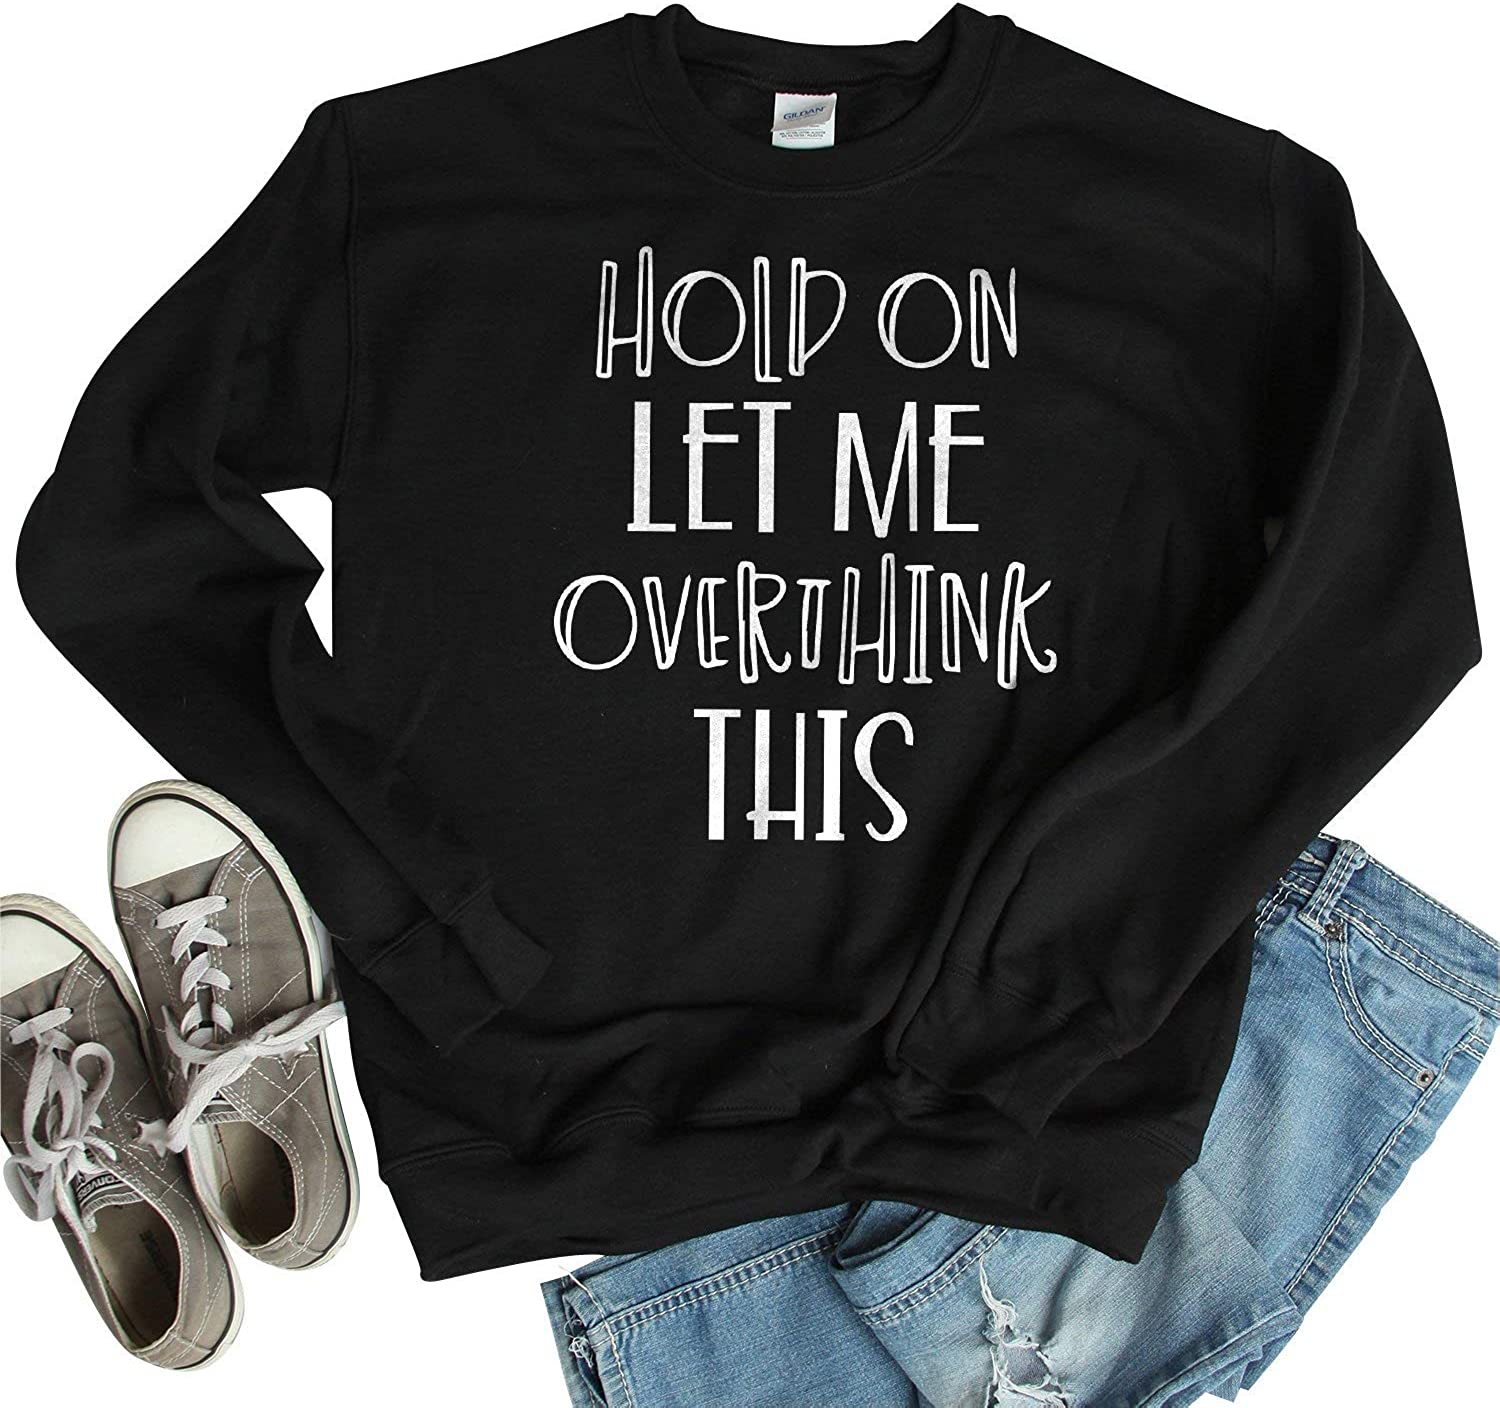 Hold Max 68% OFF On Let Me Fixed price for sale Overthink Sweatshirt Crewneck Unisex Casua This